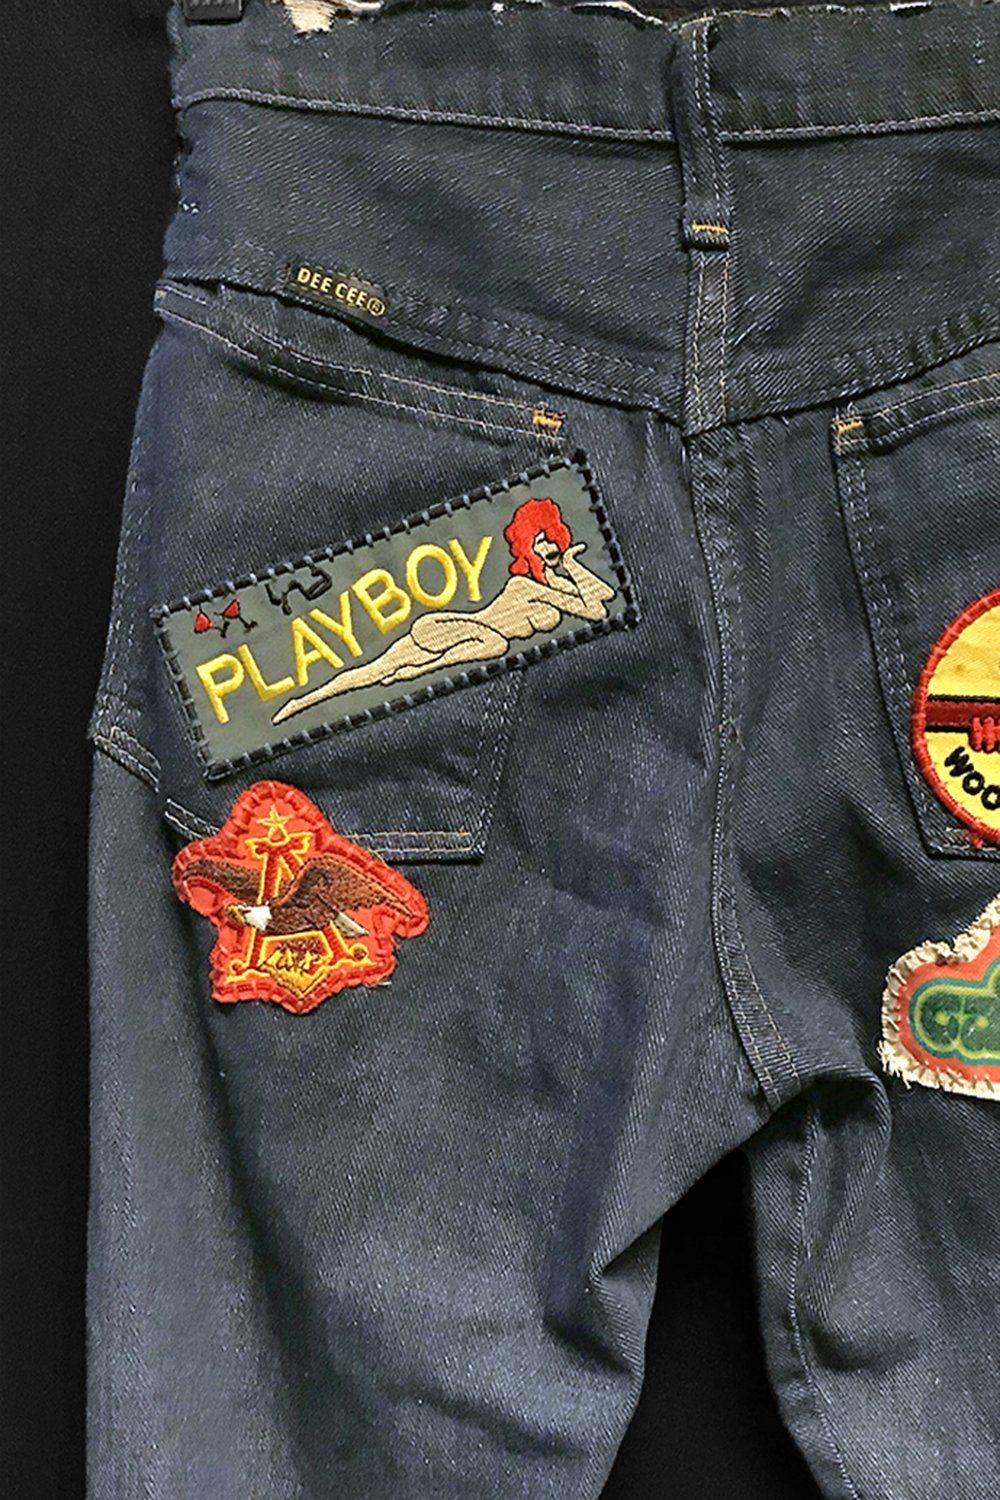 Vintage PLAYBOY Vietnam Liberty Cuff Patches・ALMOST GONE